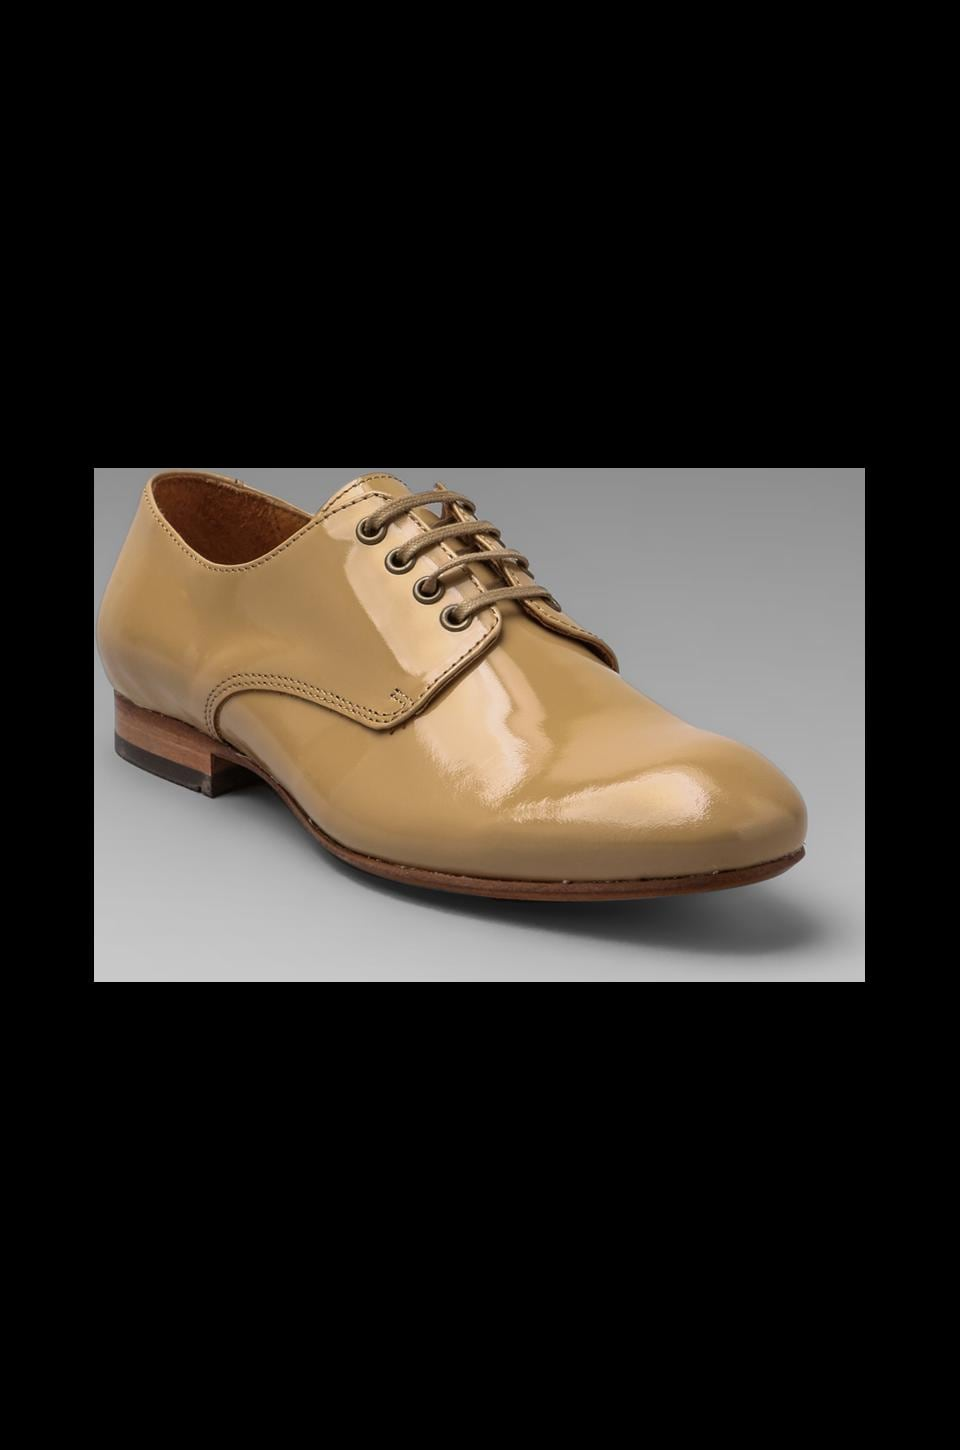 H by Hudson Lincoln Patent Oxfords in Beige